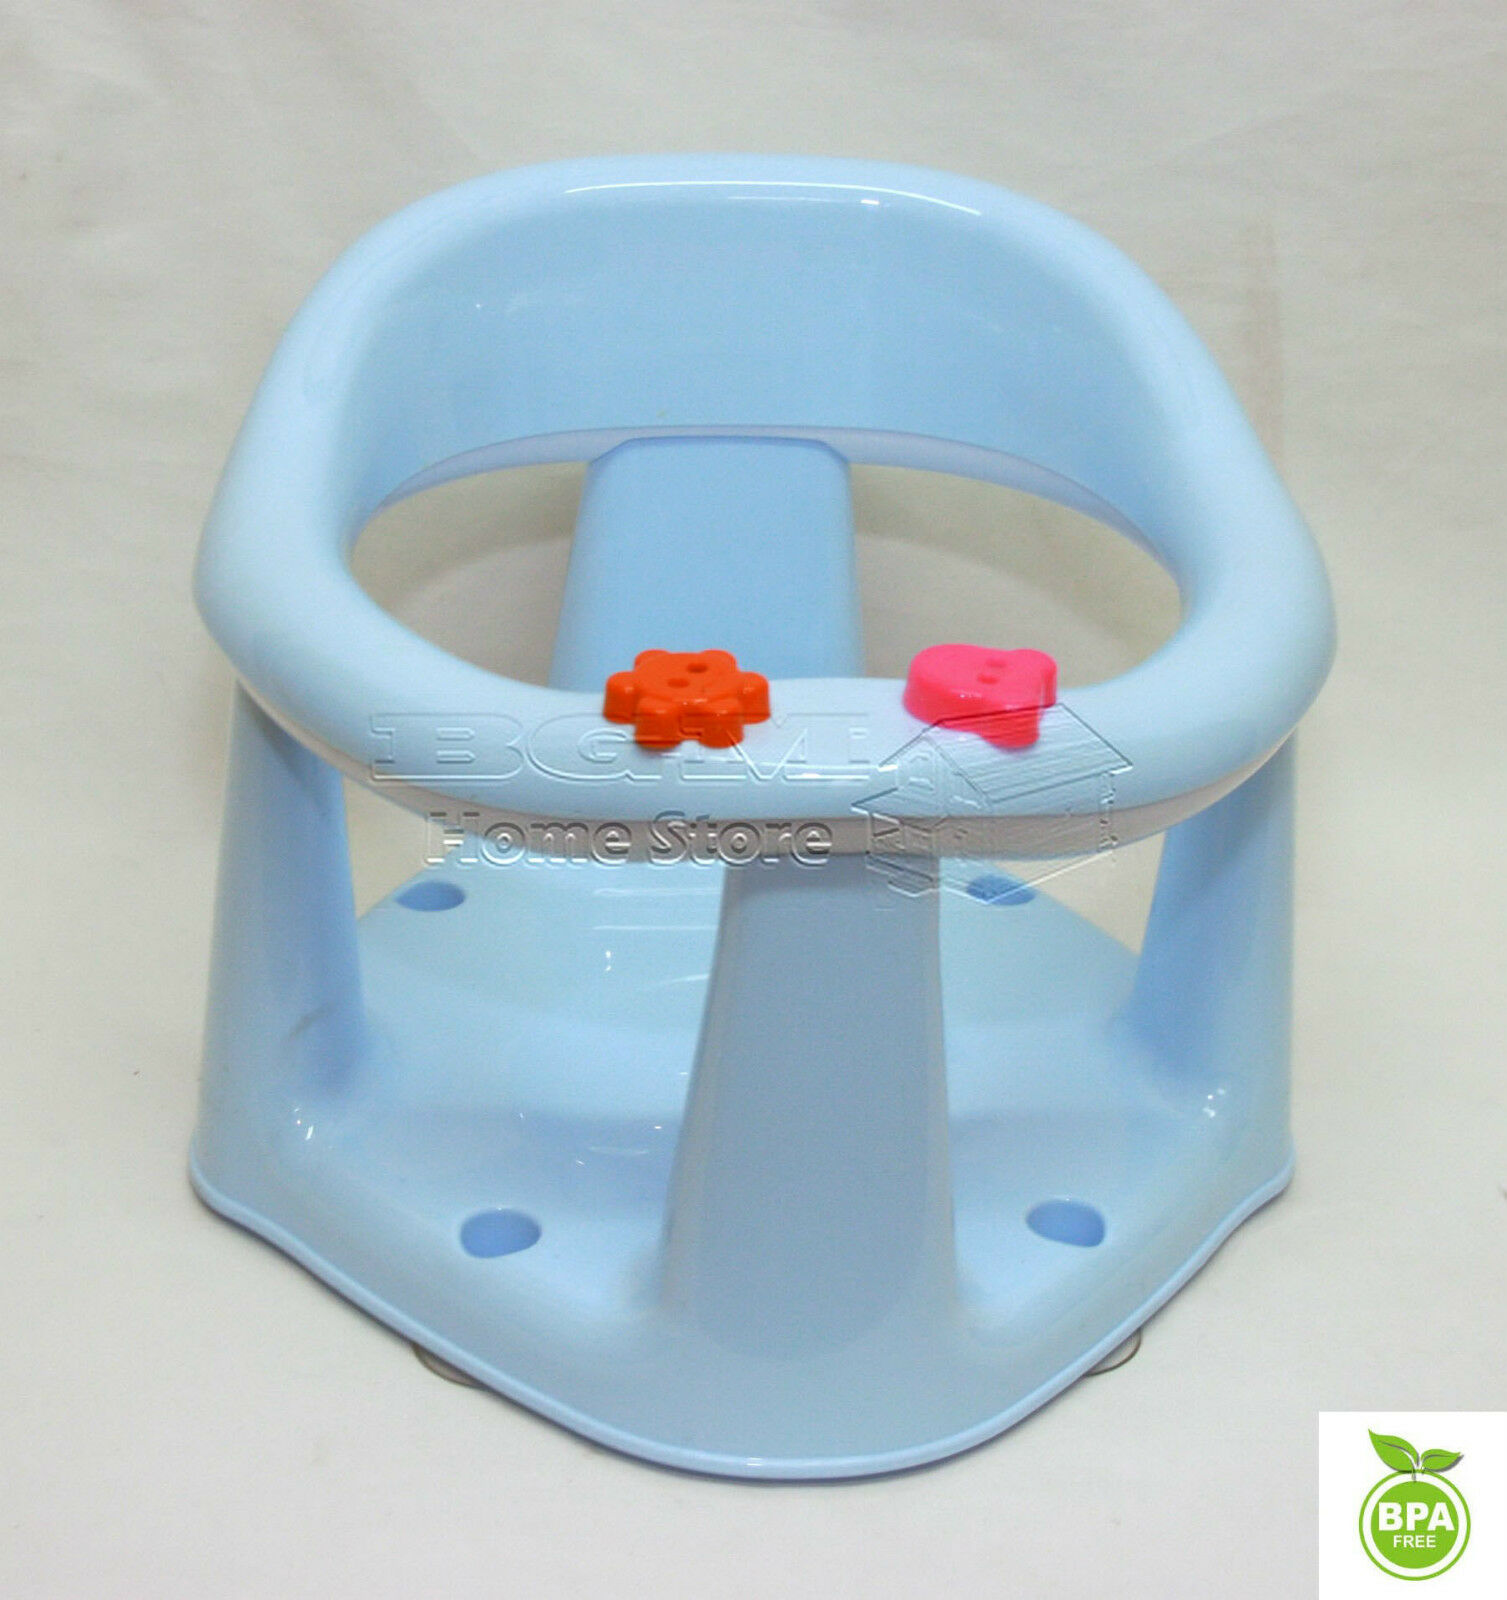 3 In 1 Baby Bath Dining & Activity Play Seat Kids Tub Ring Seat ...